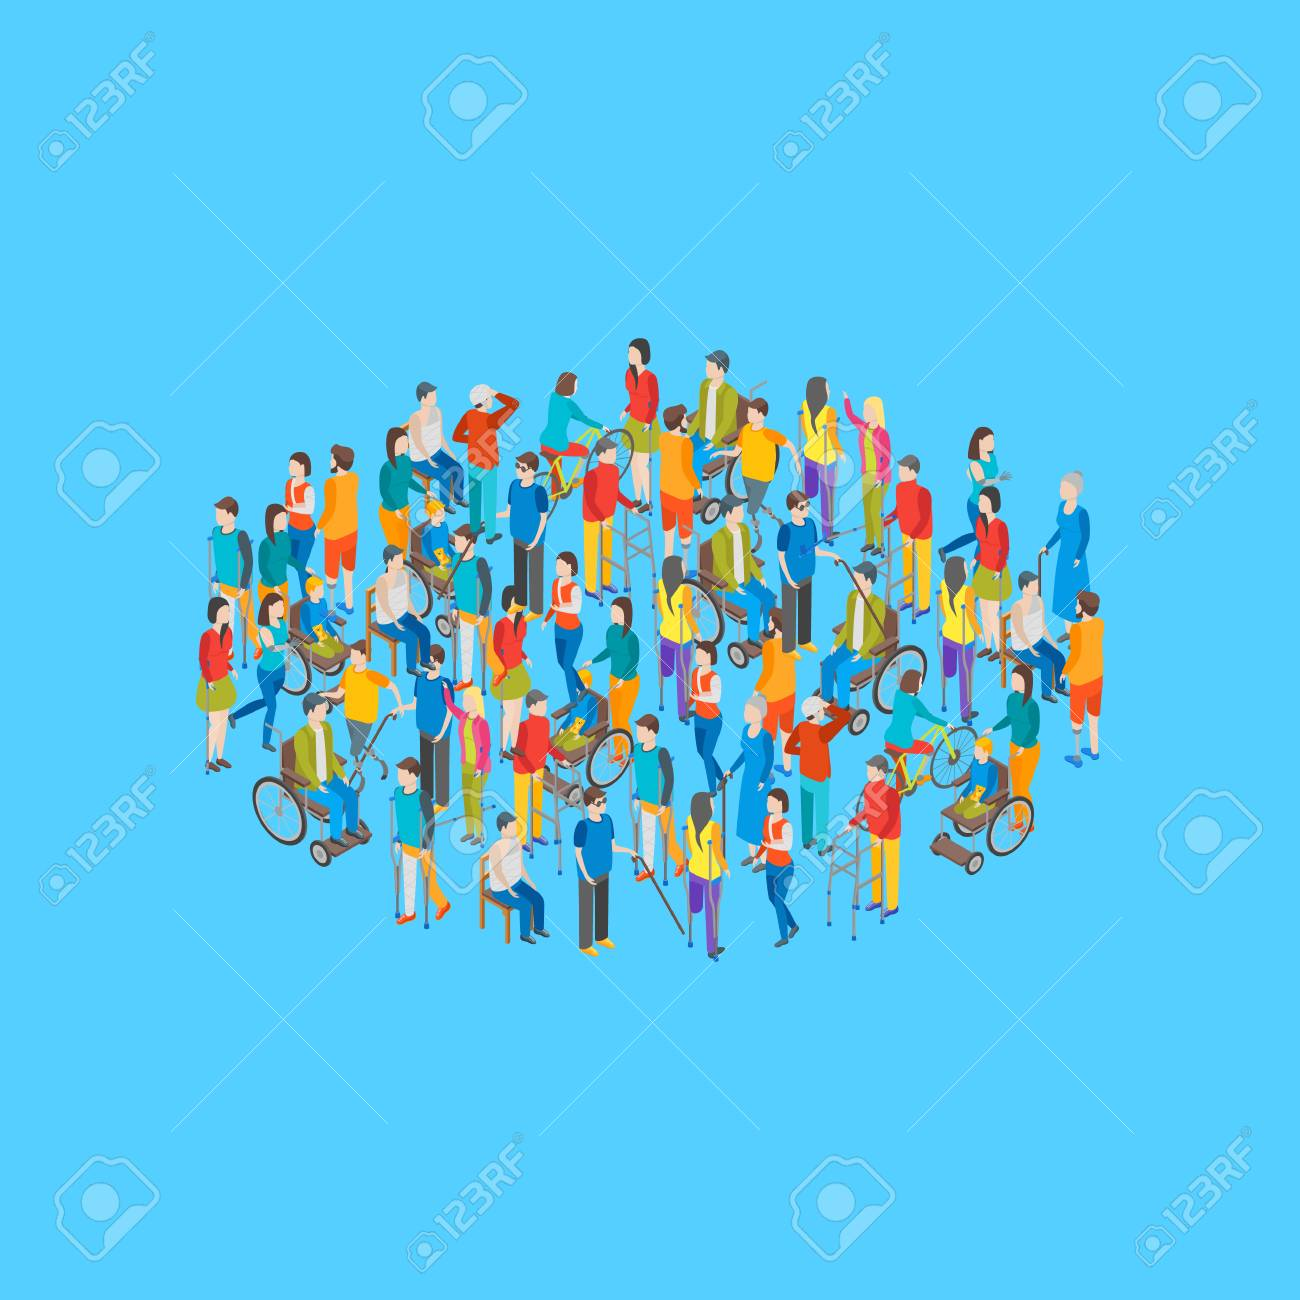 Isometric Disabled People Characters Grouping on a Blue Background. Vector - 109505510